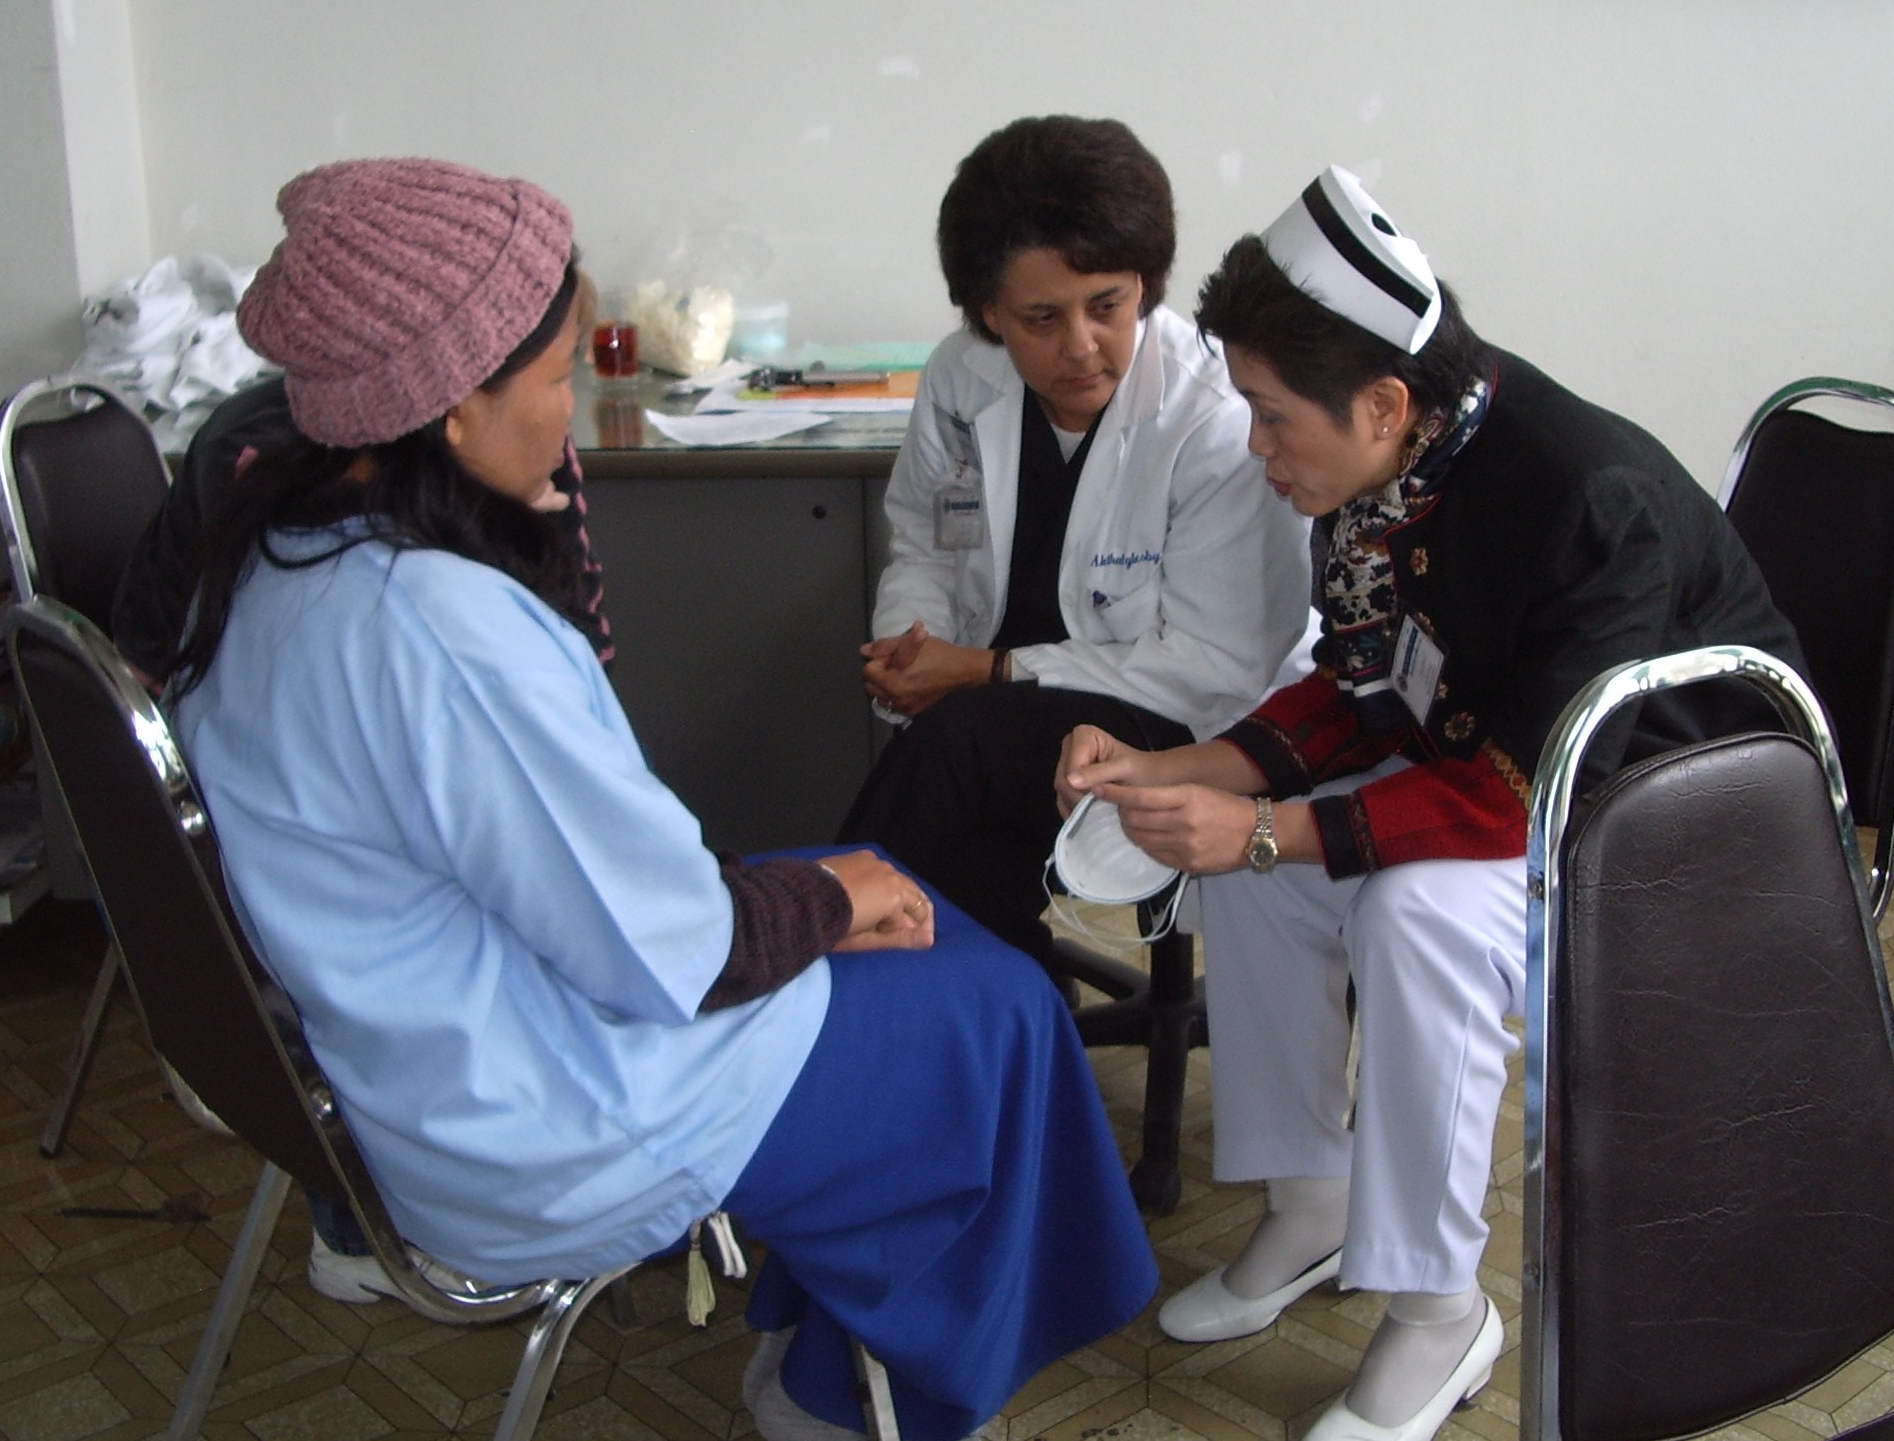 a doctor and nurse talk to a patient in an Asian country.